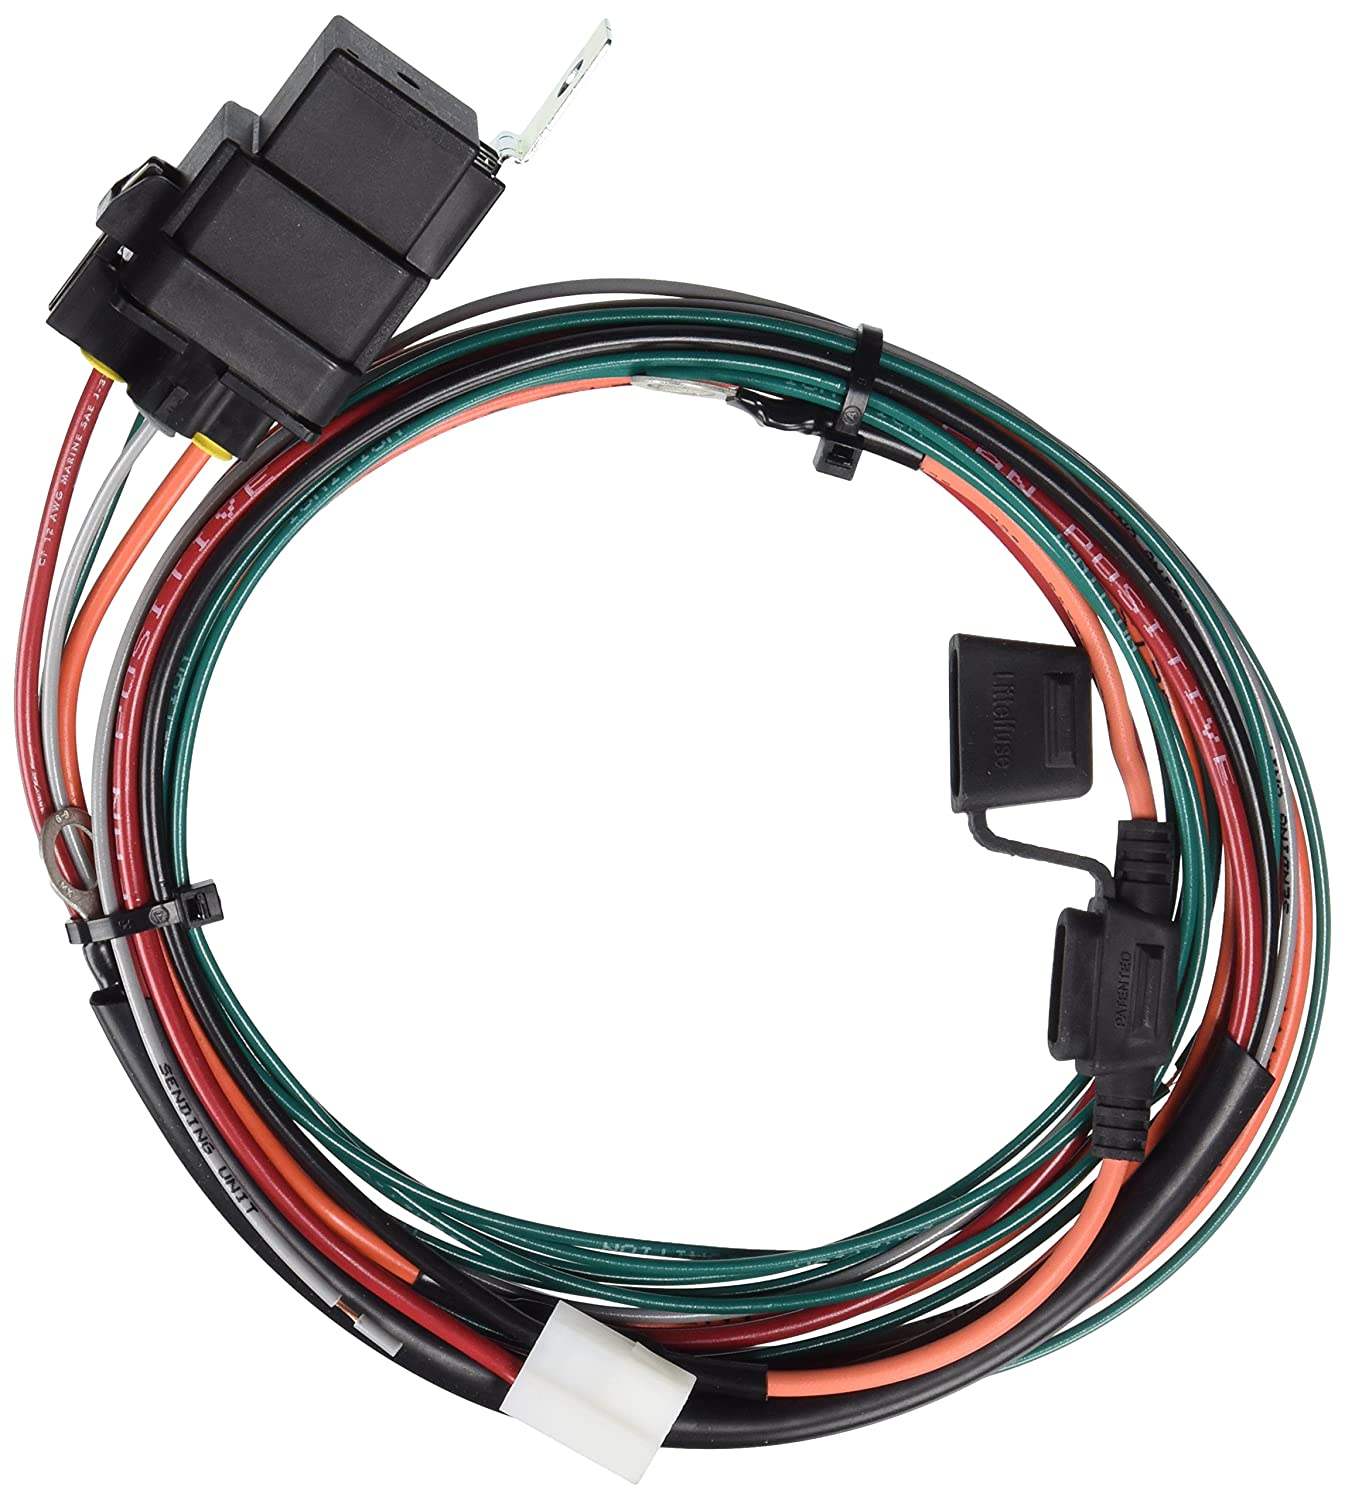 Be Cool 75021 Electric Radiator Fan Wiring Harness Kit, Turns On At 195 Degrees And Off At 175 Degrees